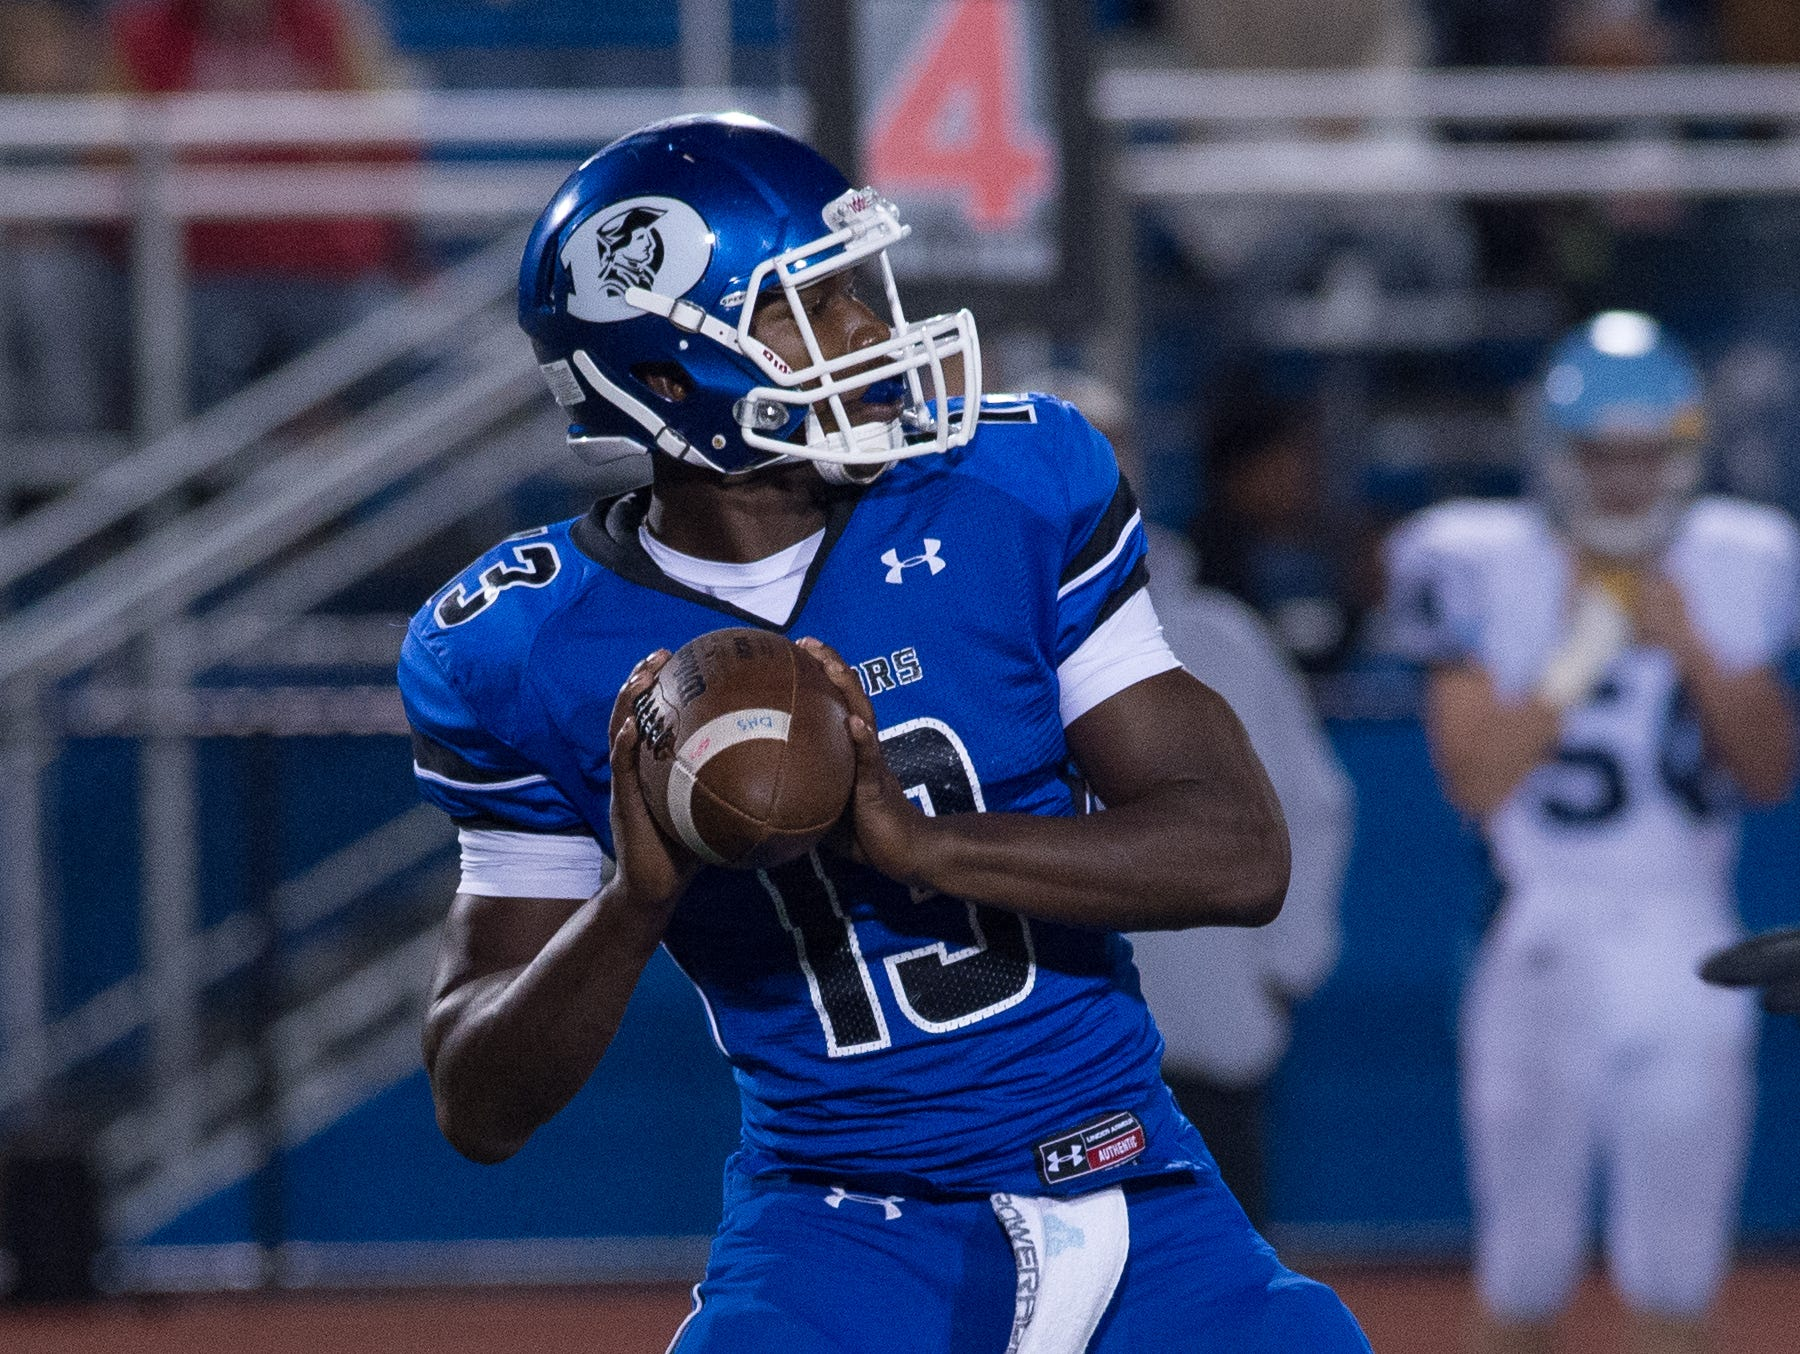 Dover's quarterback Jordan Magee (13) looks for a receiver in their home game against Cape Henlopen.